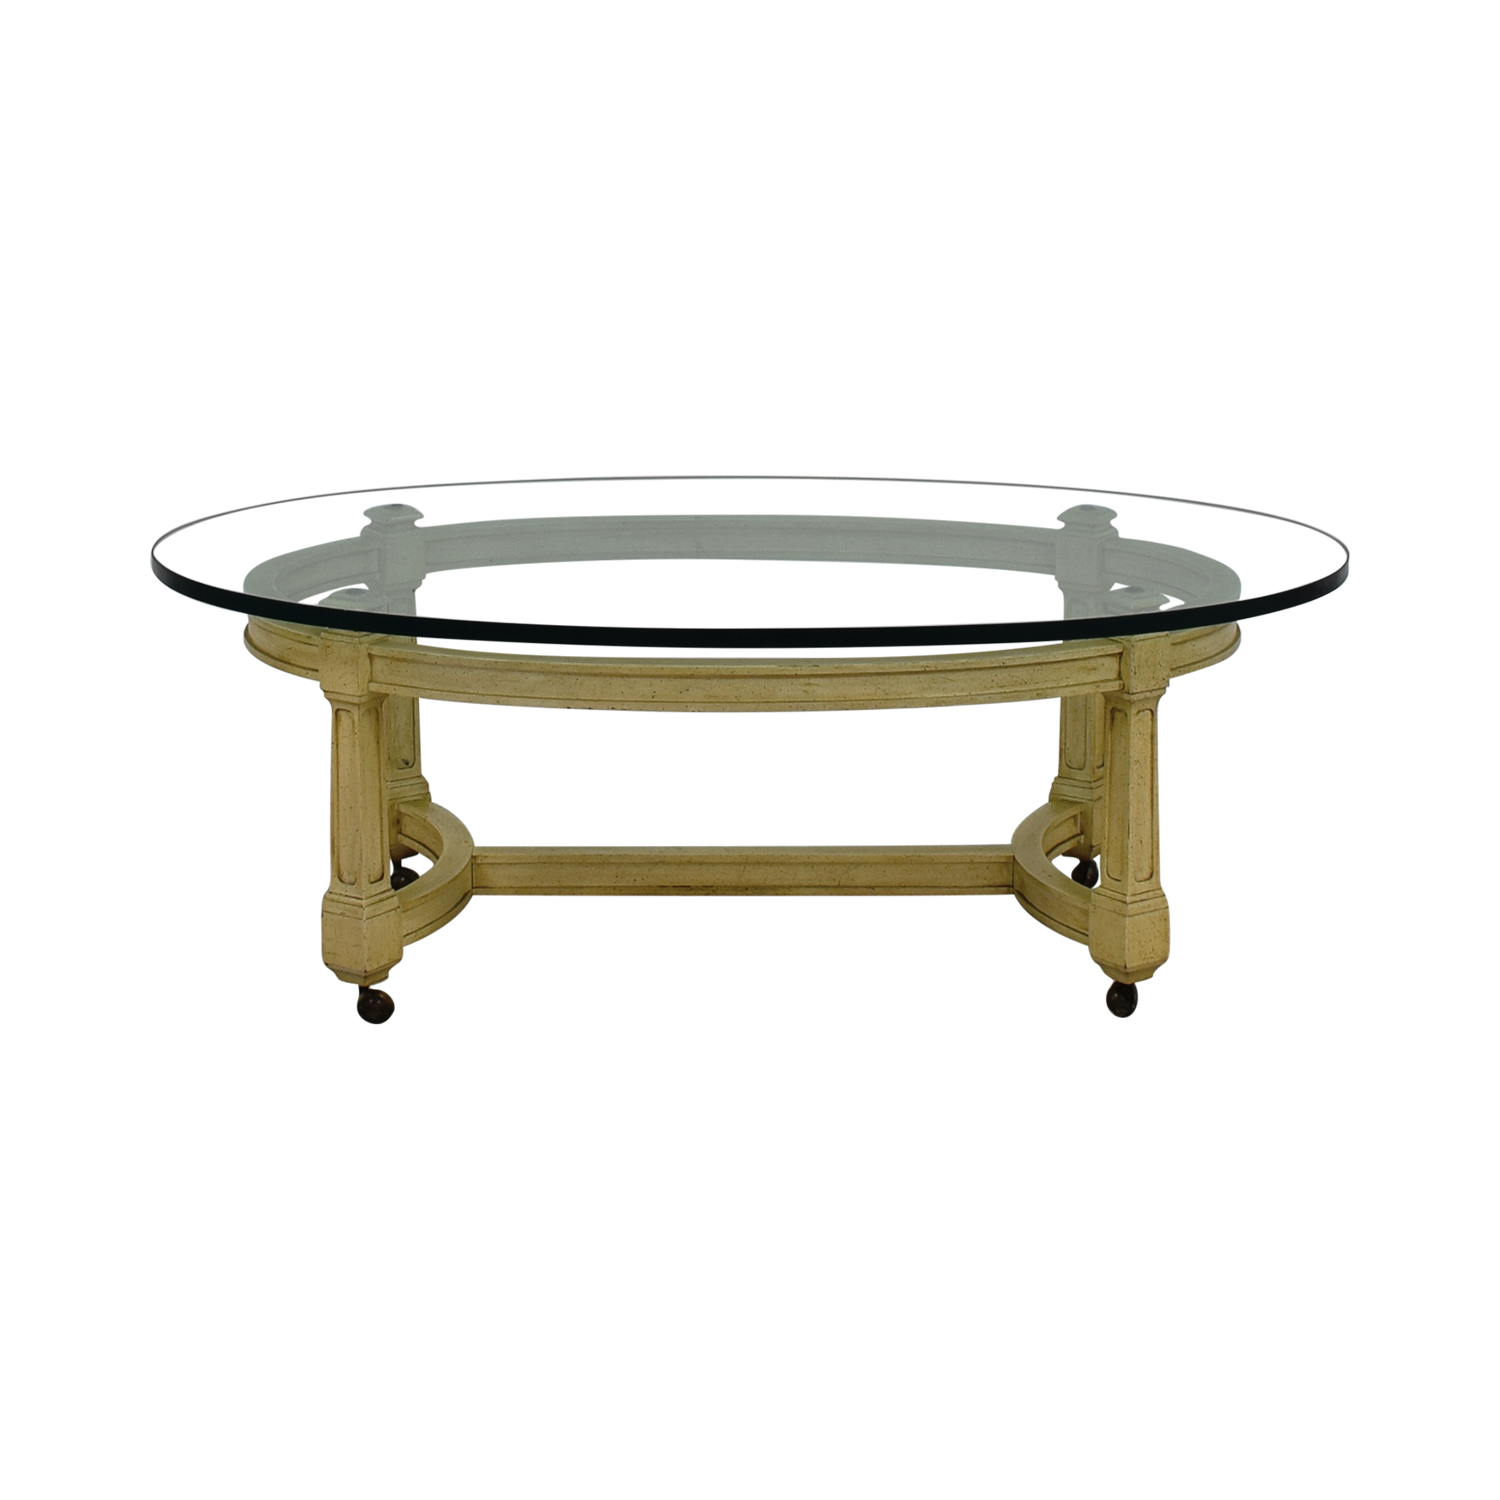 82 off off white and glass oval coffee table on castors for Oval glass coffee table